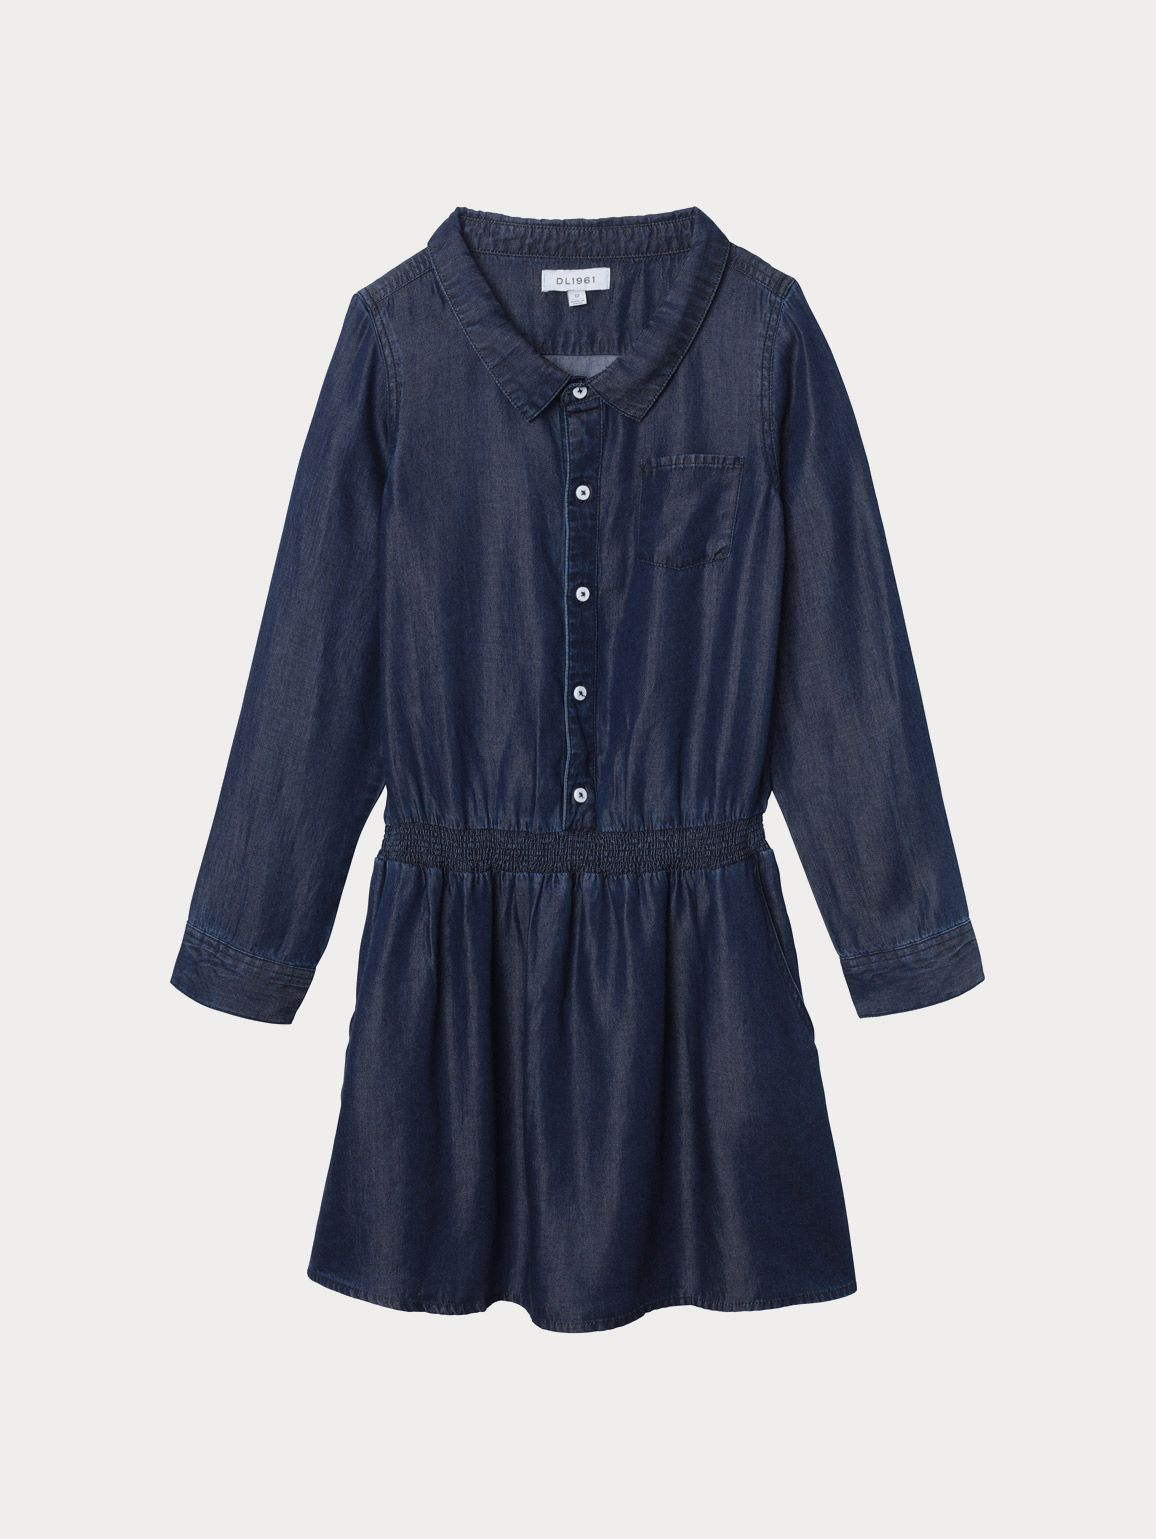 Kids Jacket - London Dress | Dark Rinse - DL1961